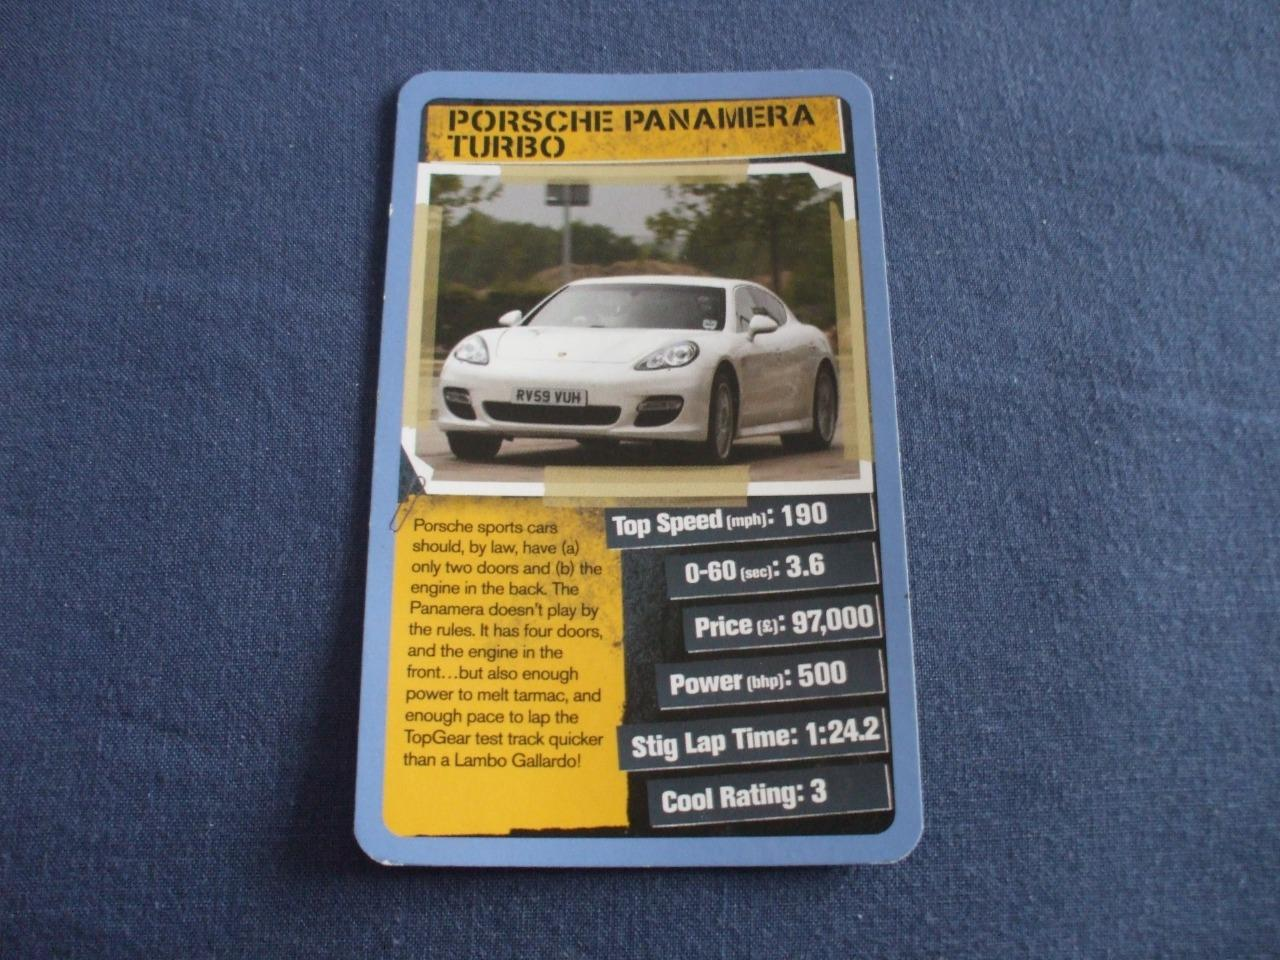 REFTOP TRUMPSTOPGEAR COOL CARS SINGLE CARD SELECTION FROM - Sports cars top trumps